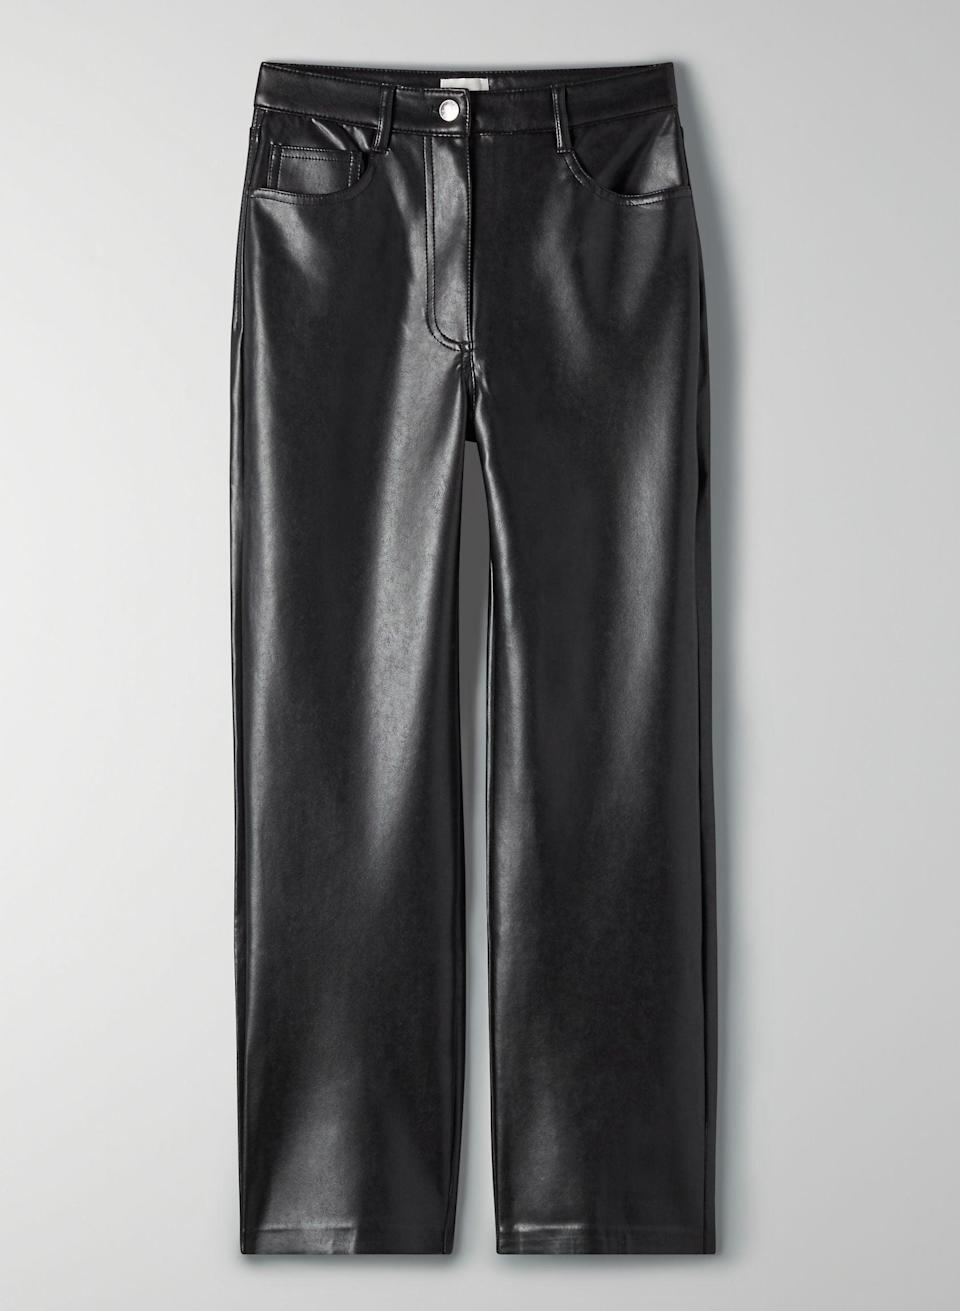 "<p>""The slick look of leather helps me elevate my outfit, but since I'm used to wearing sweats <i>and</i> focused on sustainable practices right now, I wanted to find something both comfortable and faux. Enter Aritzia's <span>Wilfred Melina Cropped Pant</span> ($148) that's made from vegan leather and allows me to show off my shoes, too.""</p>"